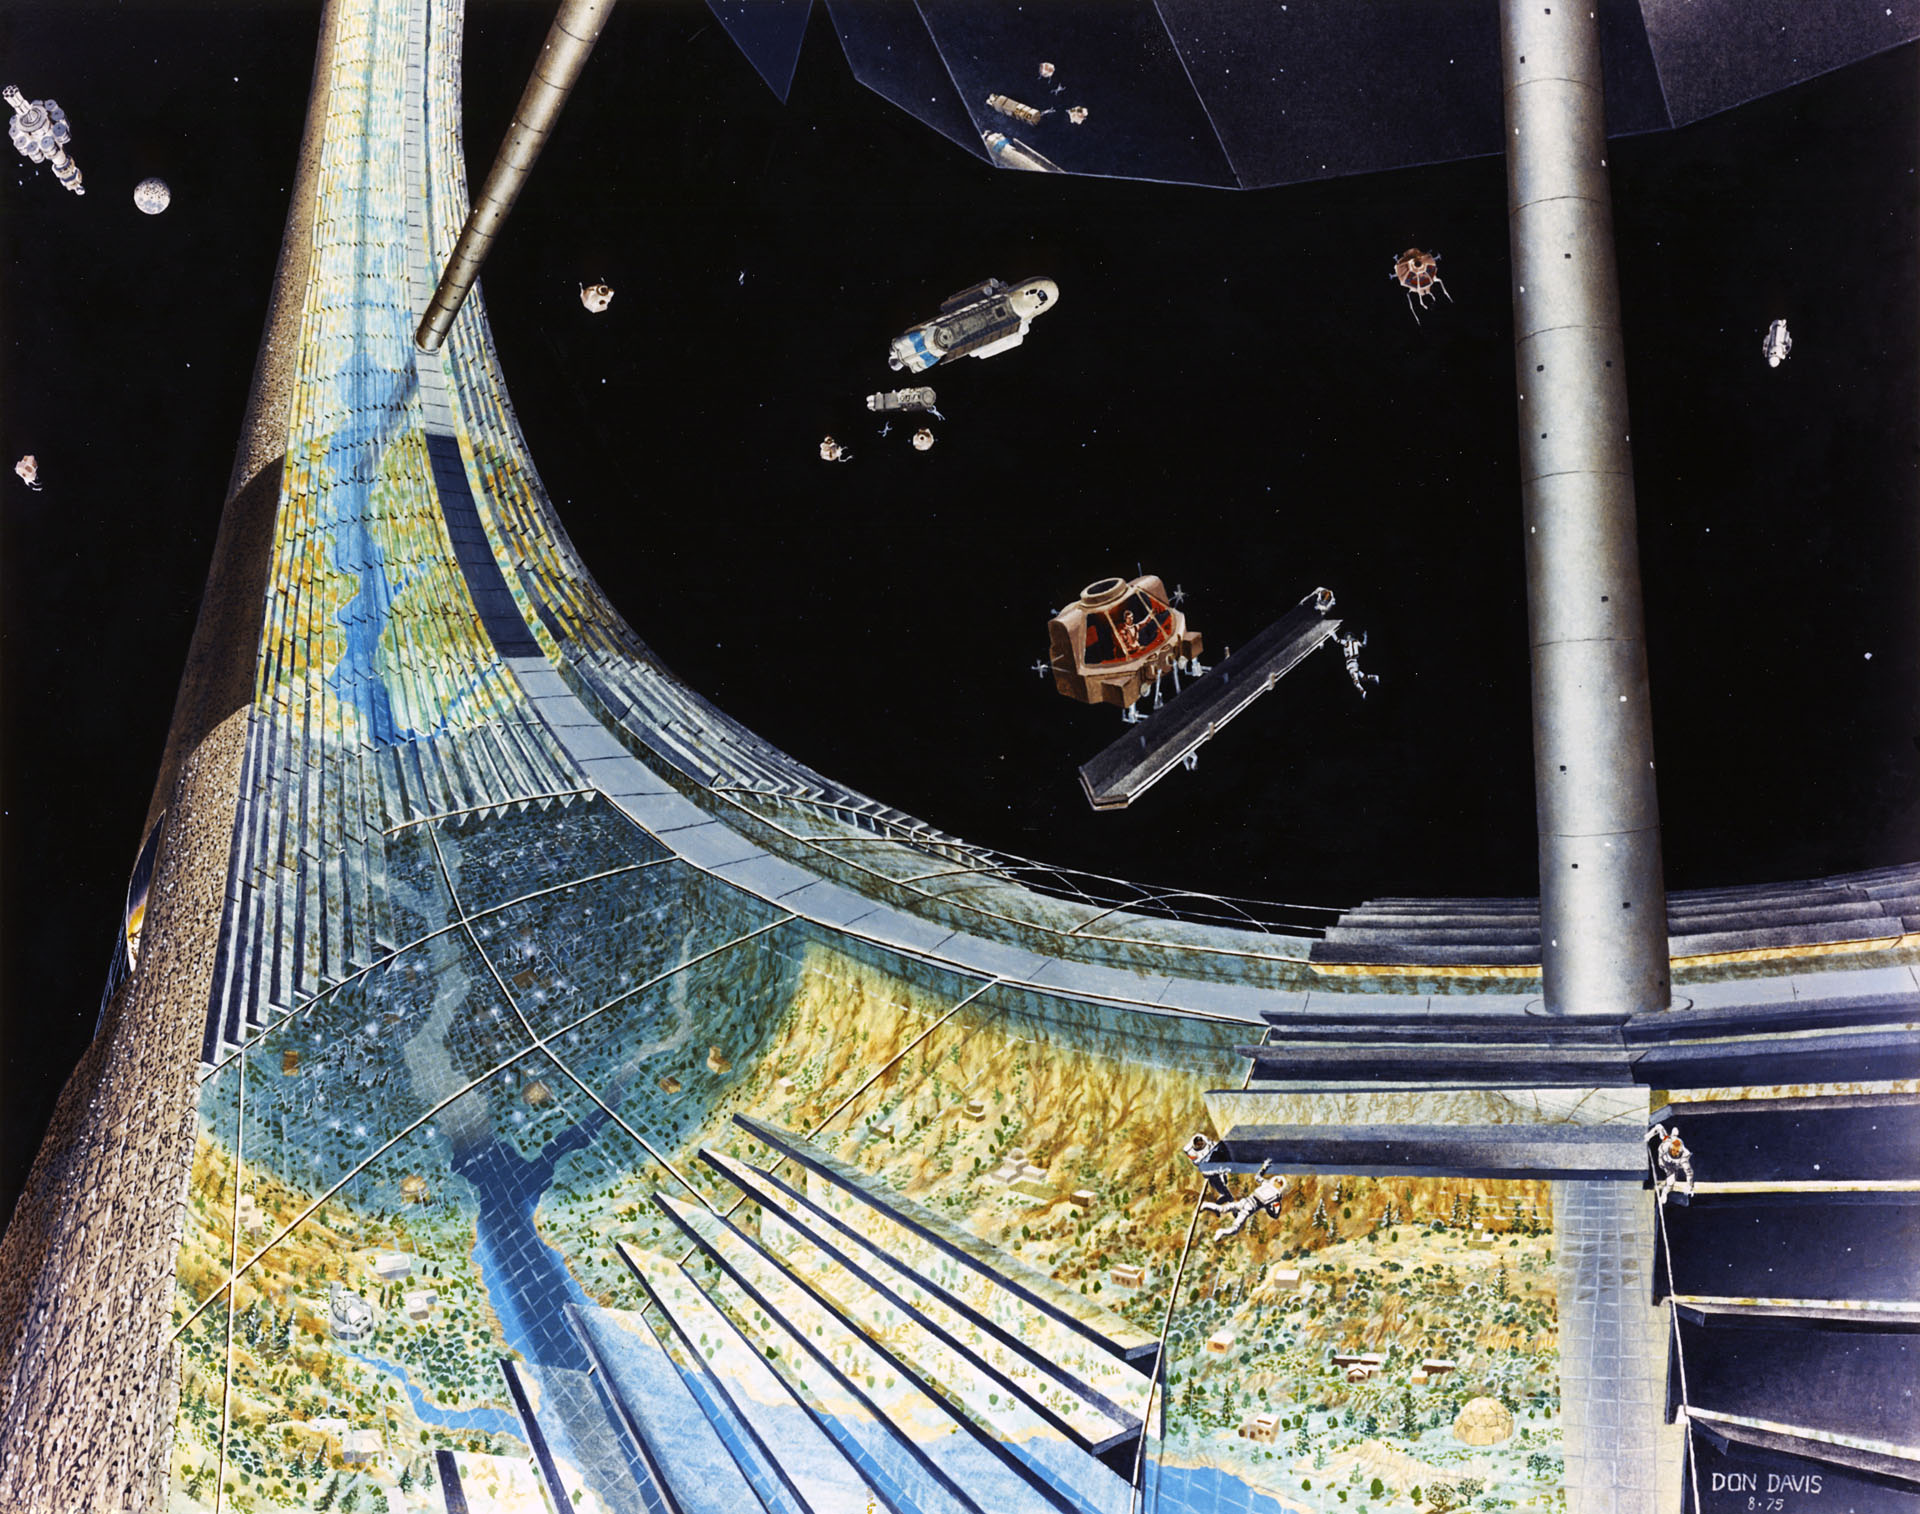 Space Colony Concepts: NASA's 1970s Vision for Giant Space Stations (Gallery)